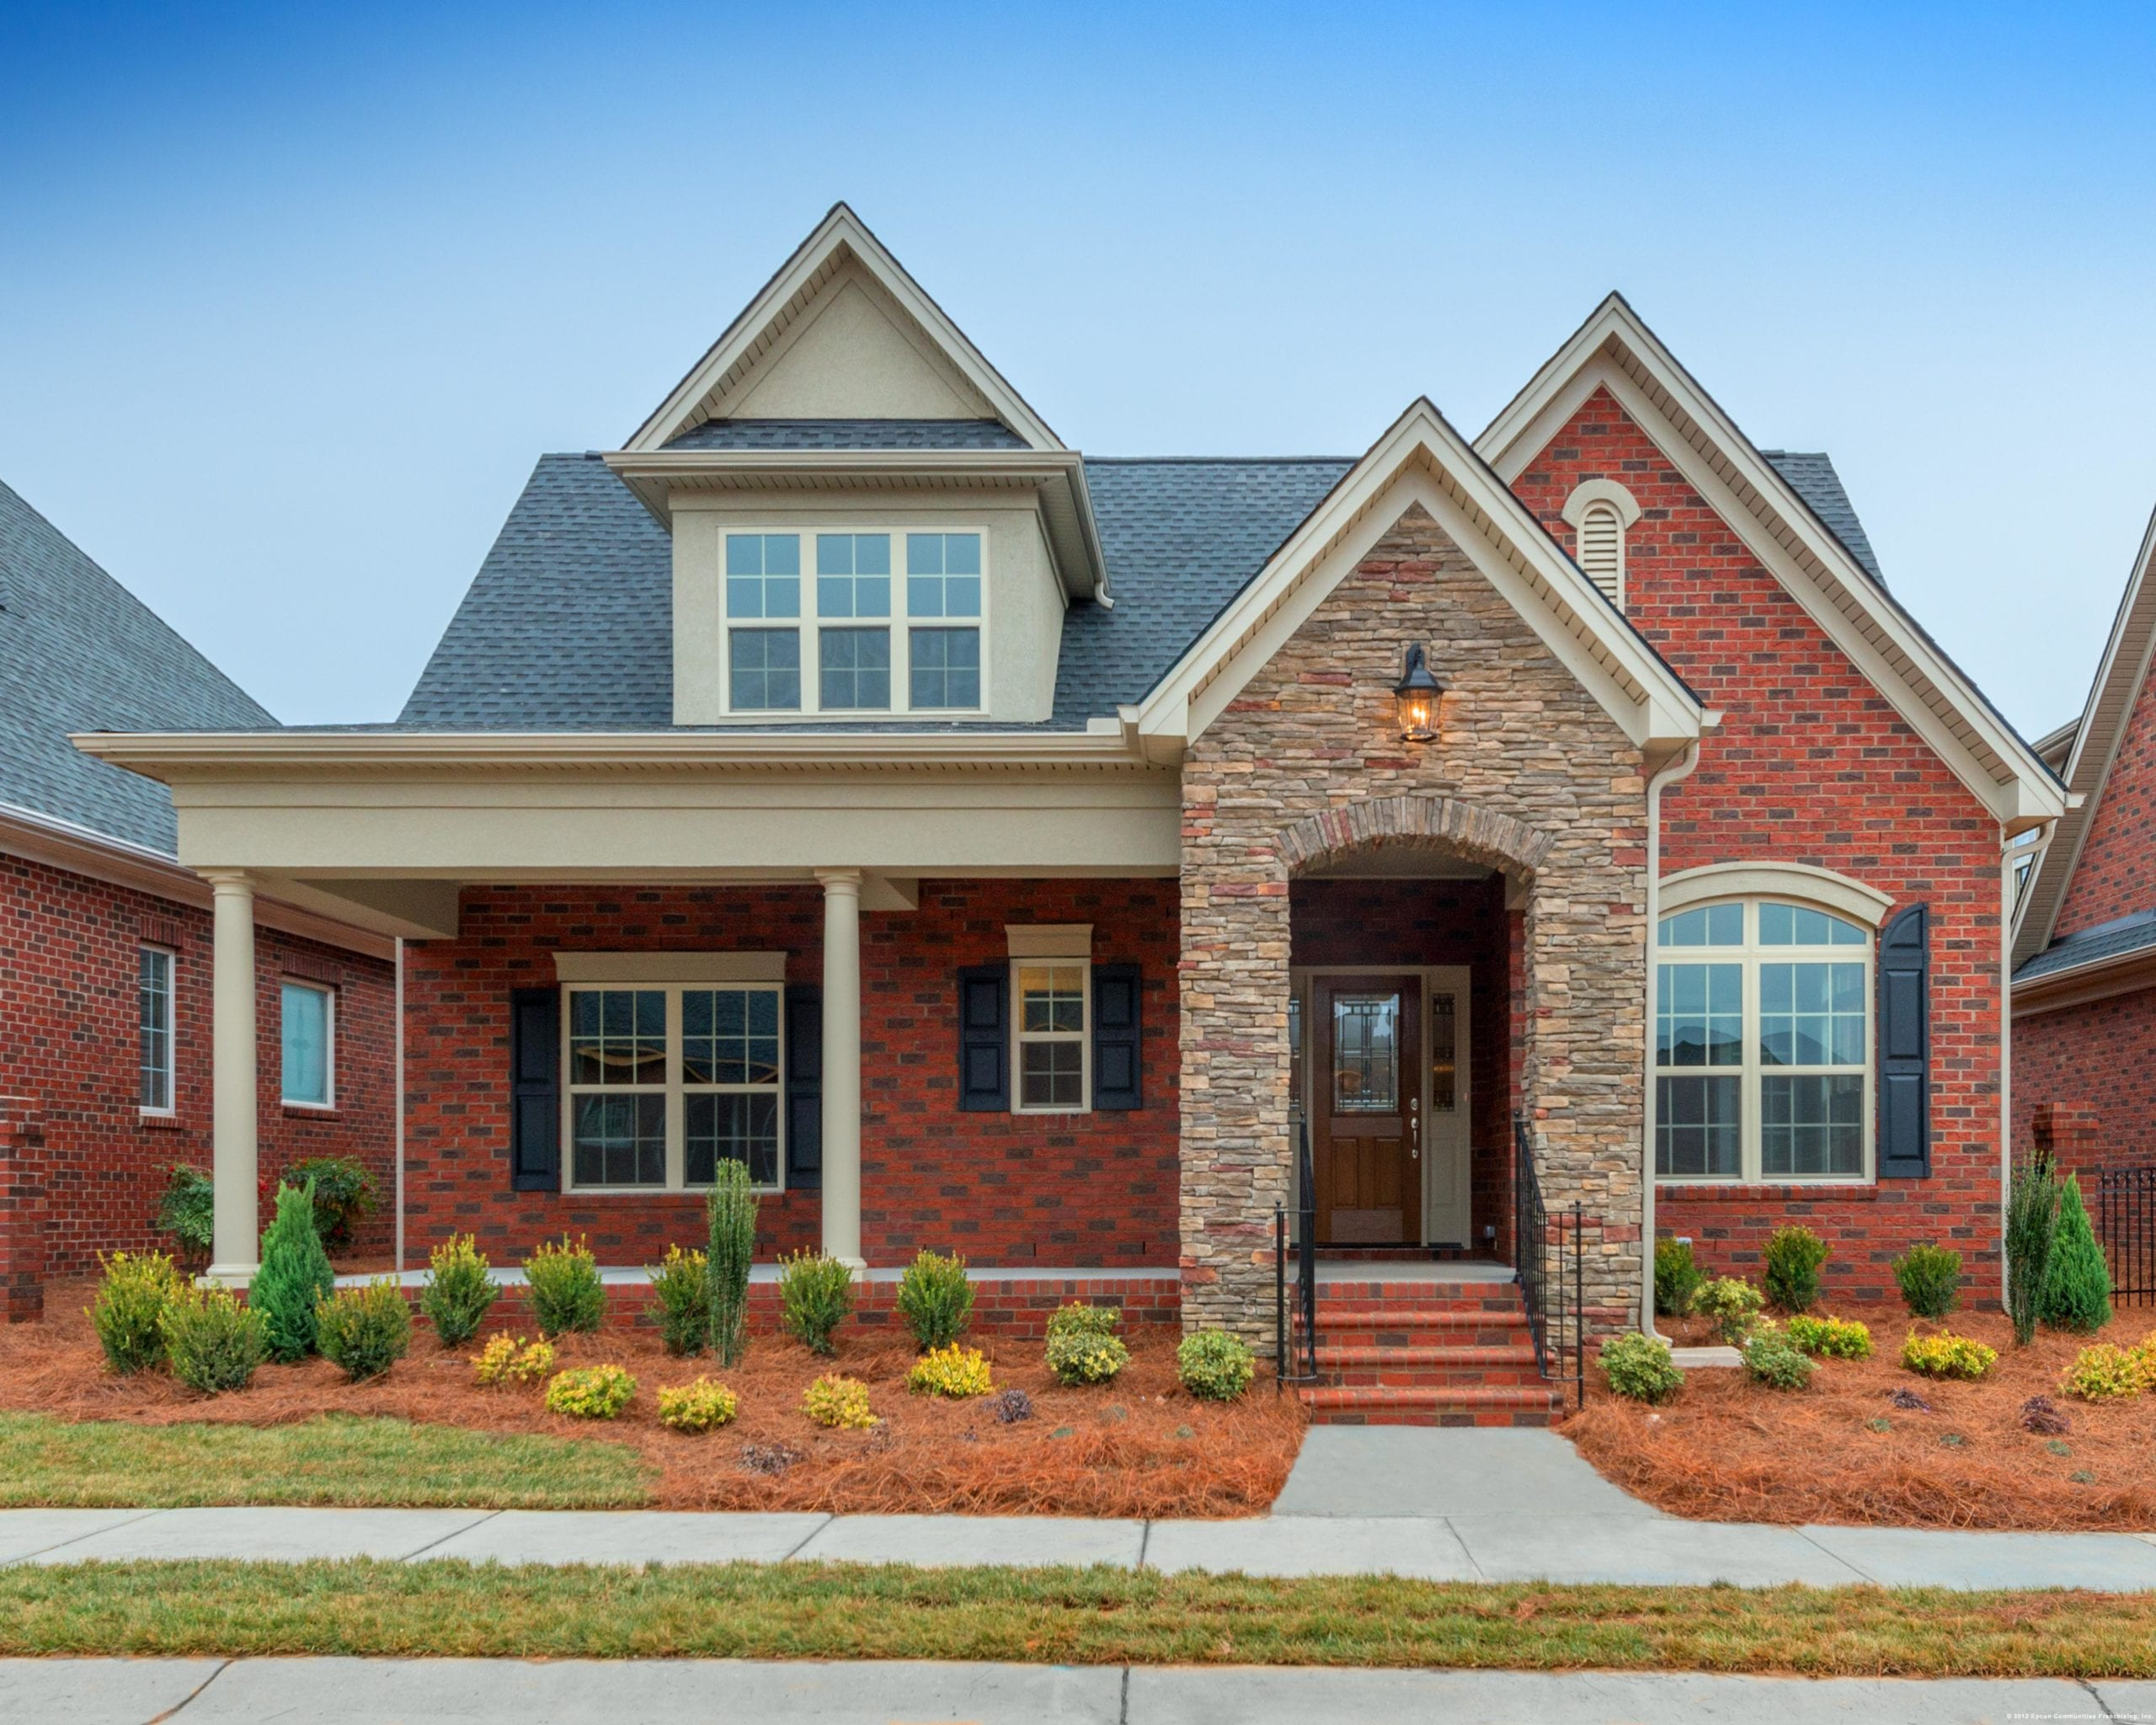 Patio Homes For Rent In Rock Hill Sc Riverwalk New Homes For Sale In Rock Hill Sc 29730 Cowan